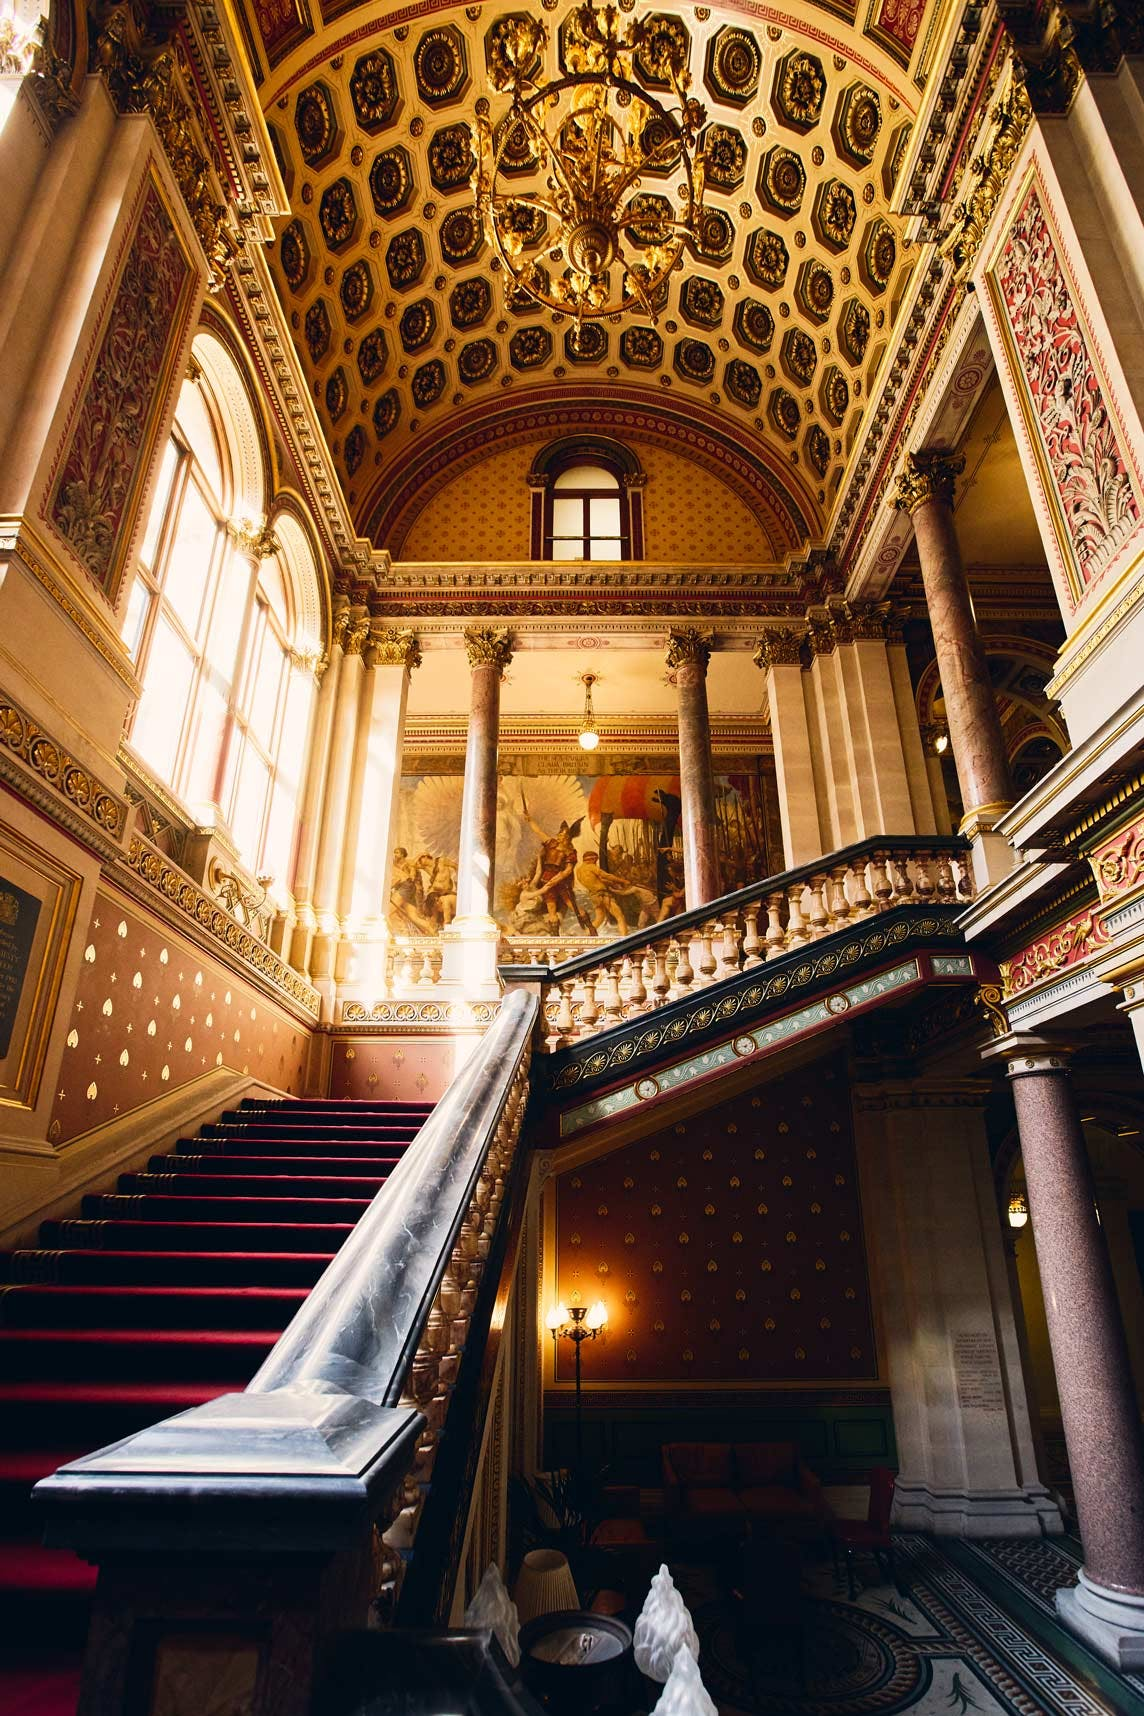 Foreign & Commonwealth Office Staircase